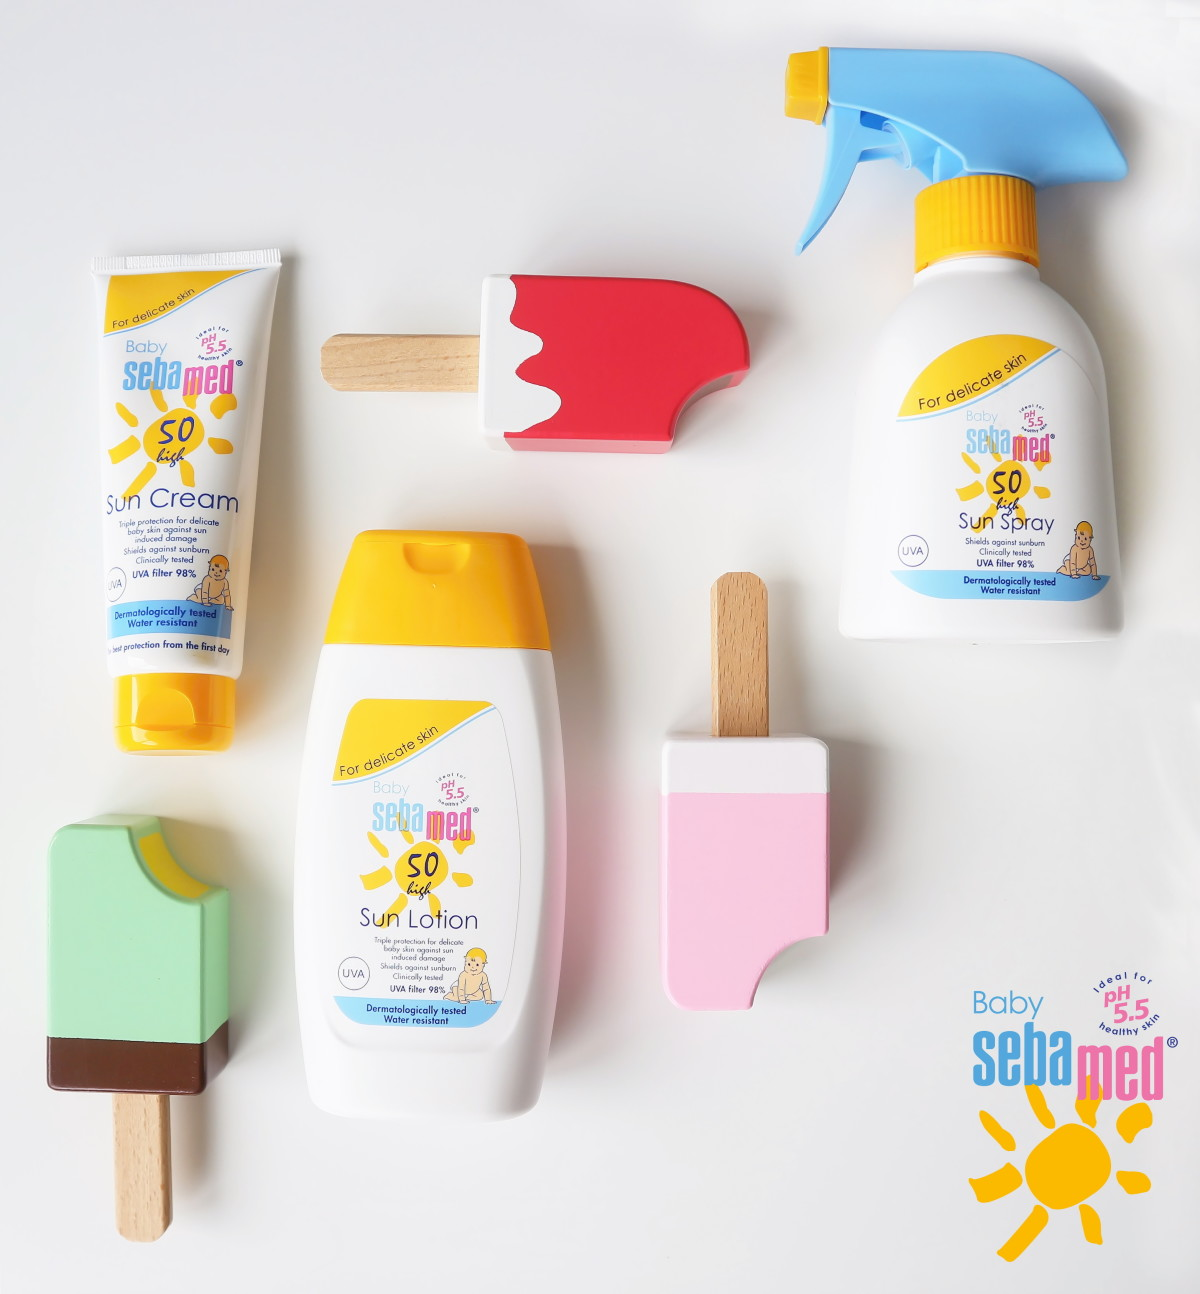 Baby sebamed sun care